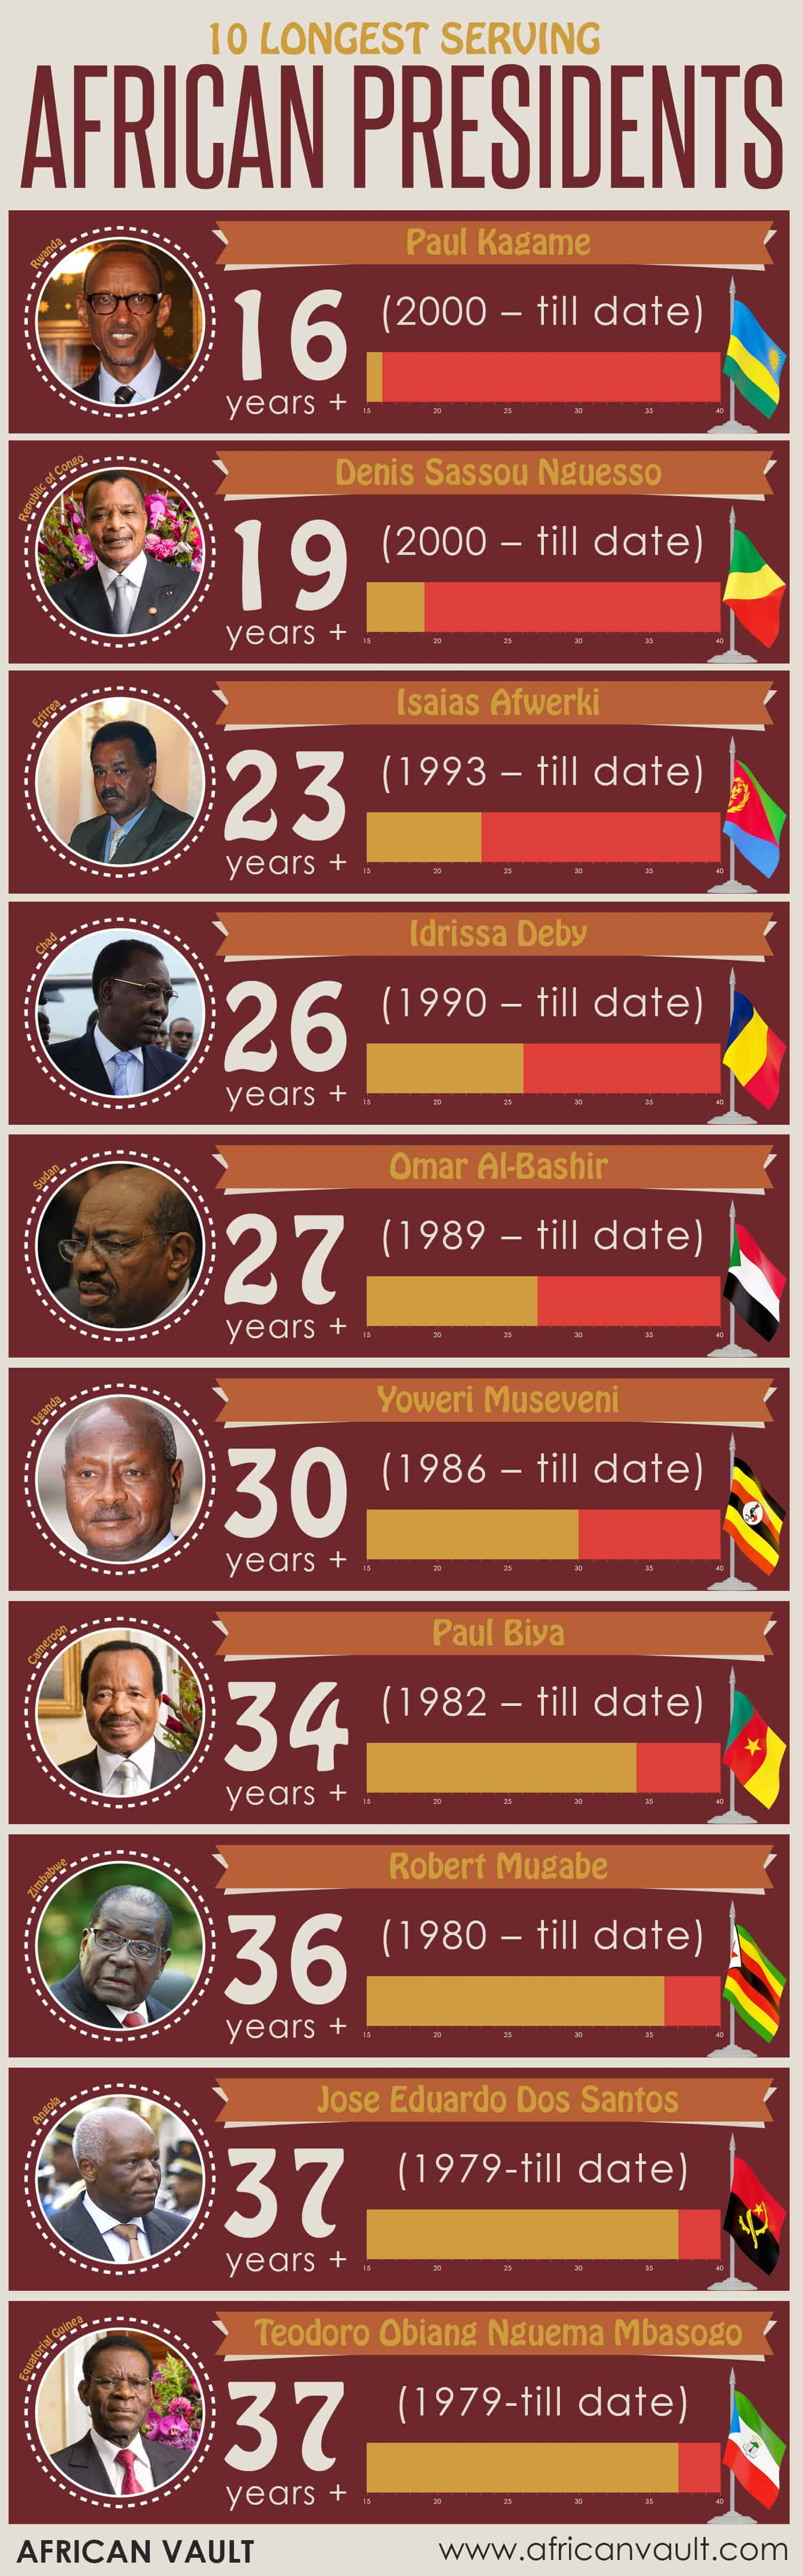 current longest serving African Presidents